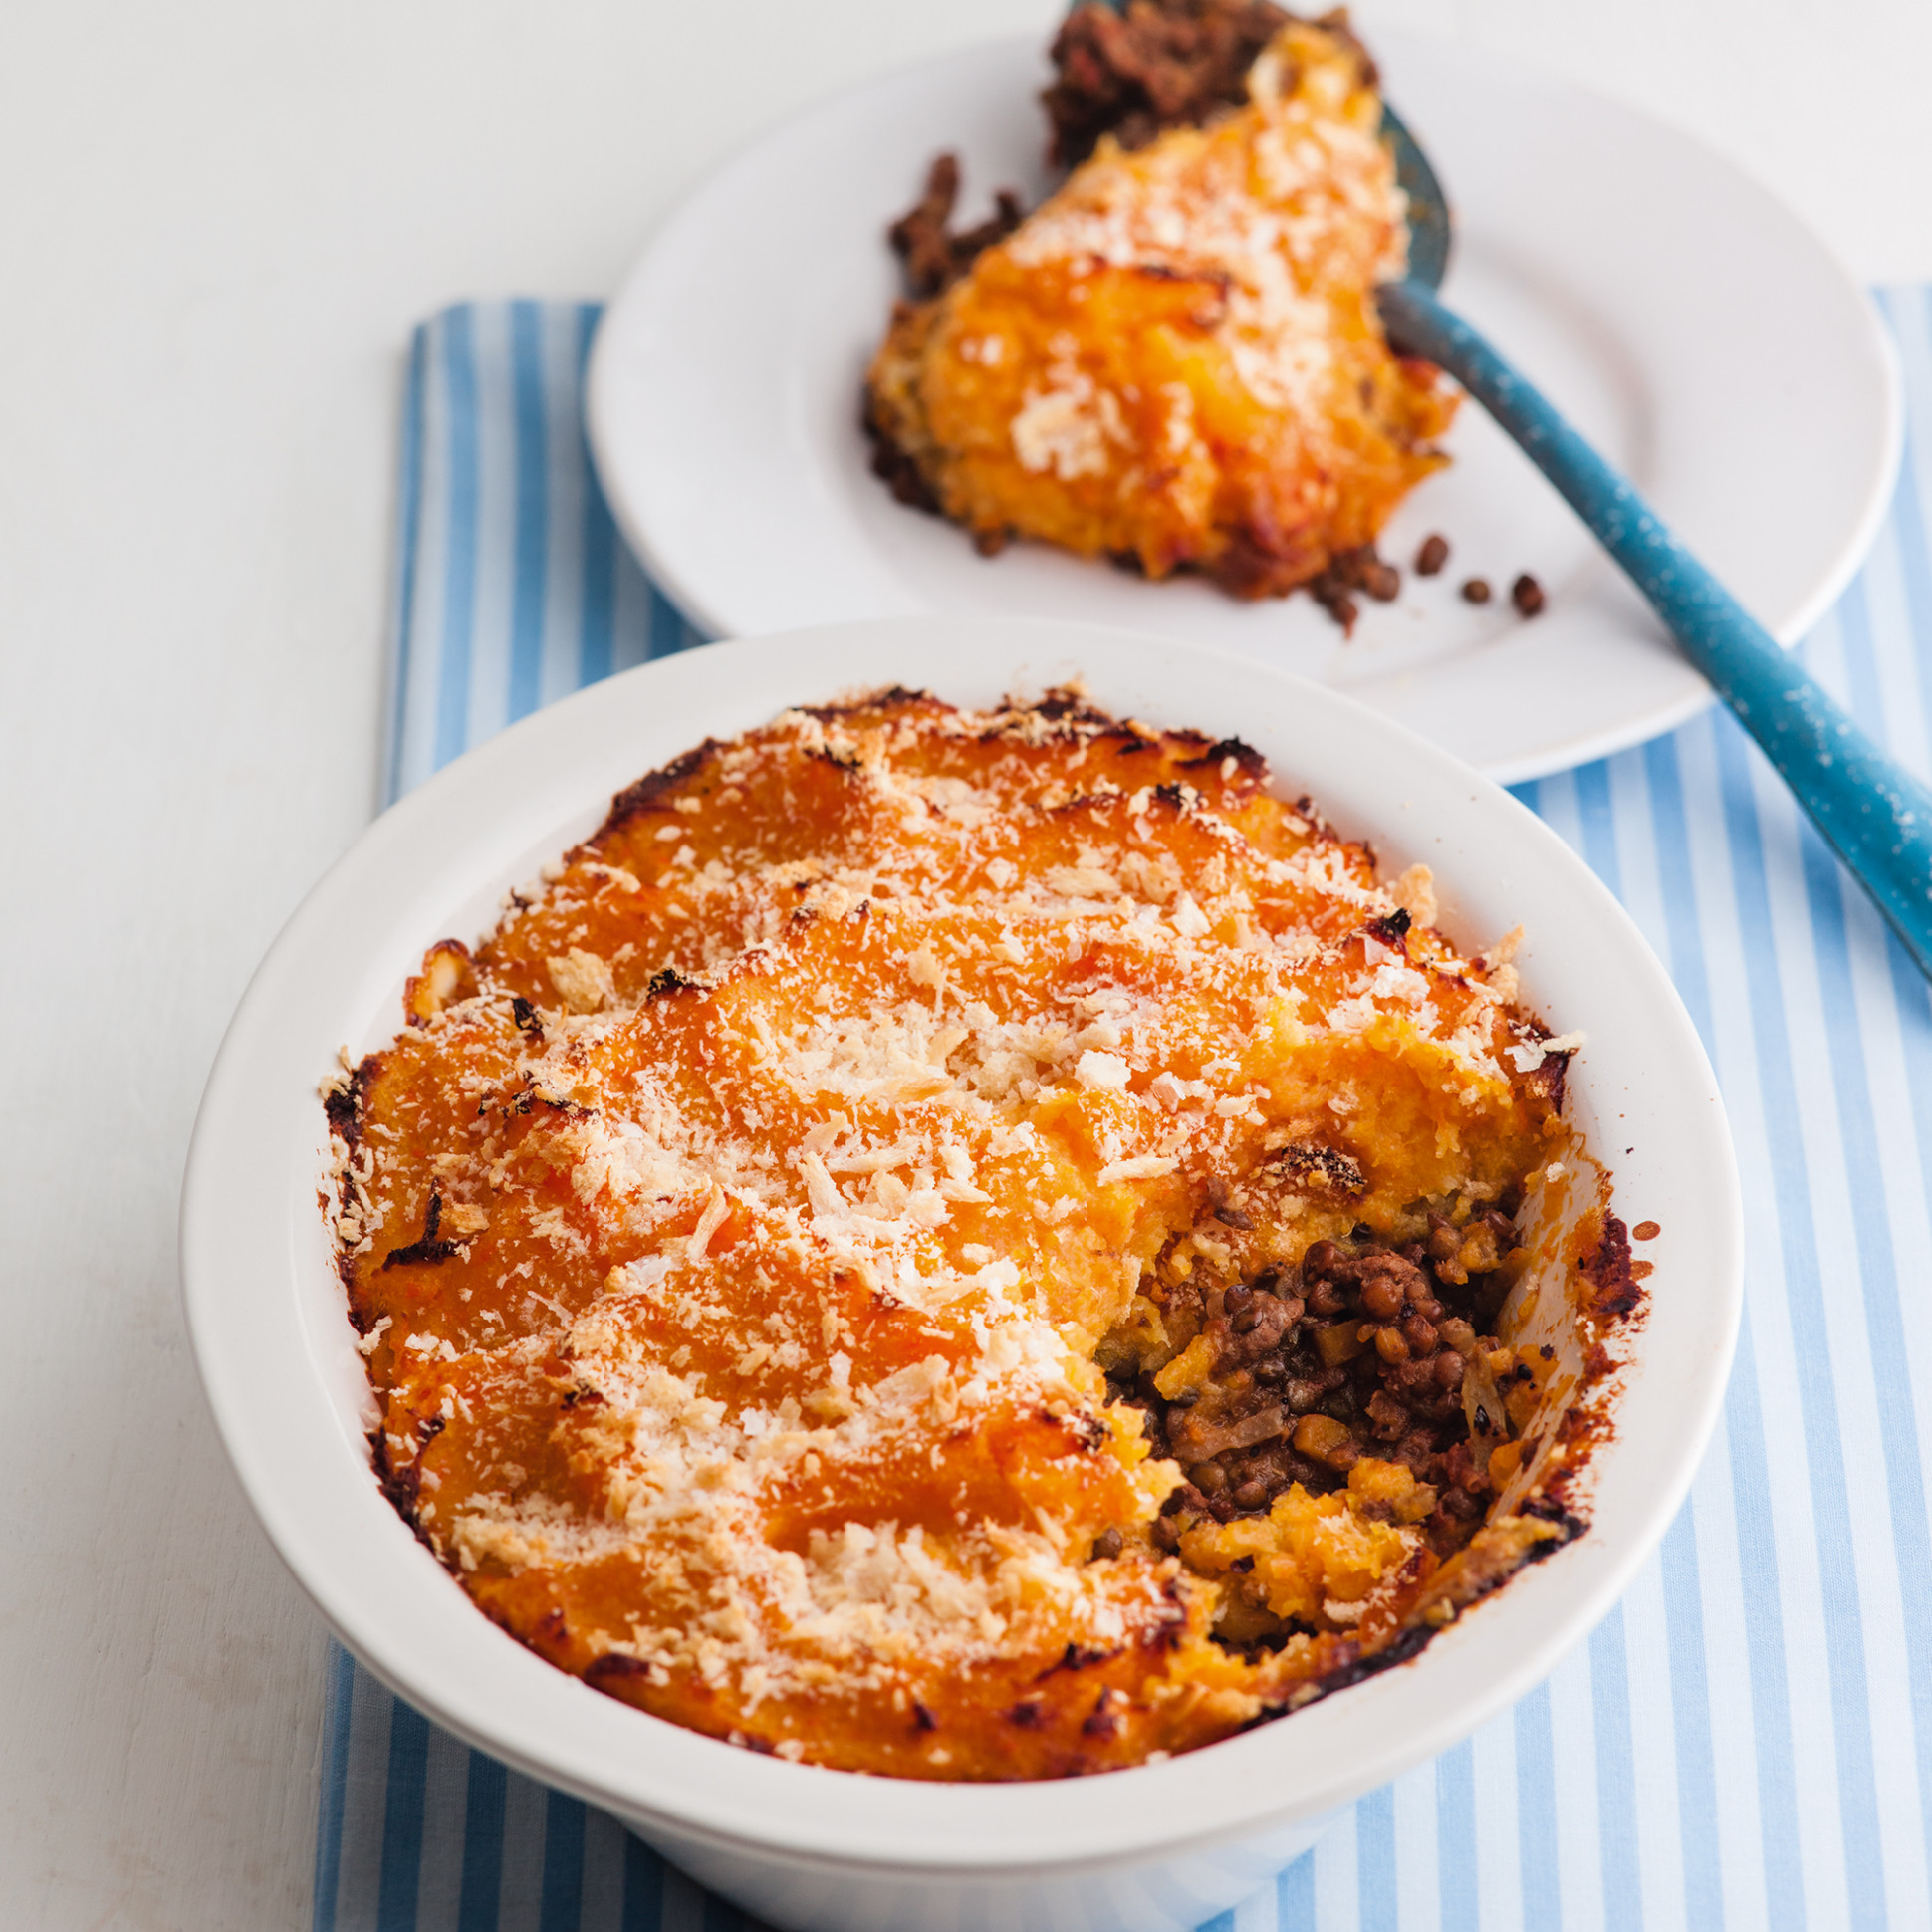 'Half and Half' Cottage Pie with Root Veg Mash - dinner recipes using half and half